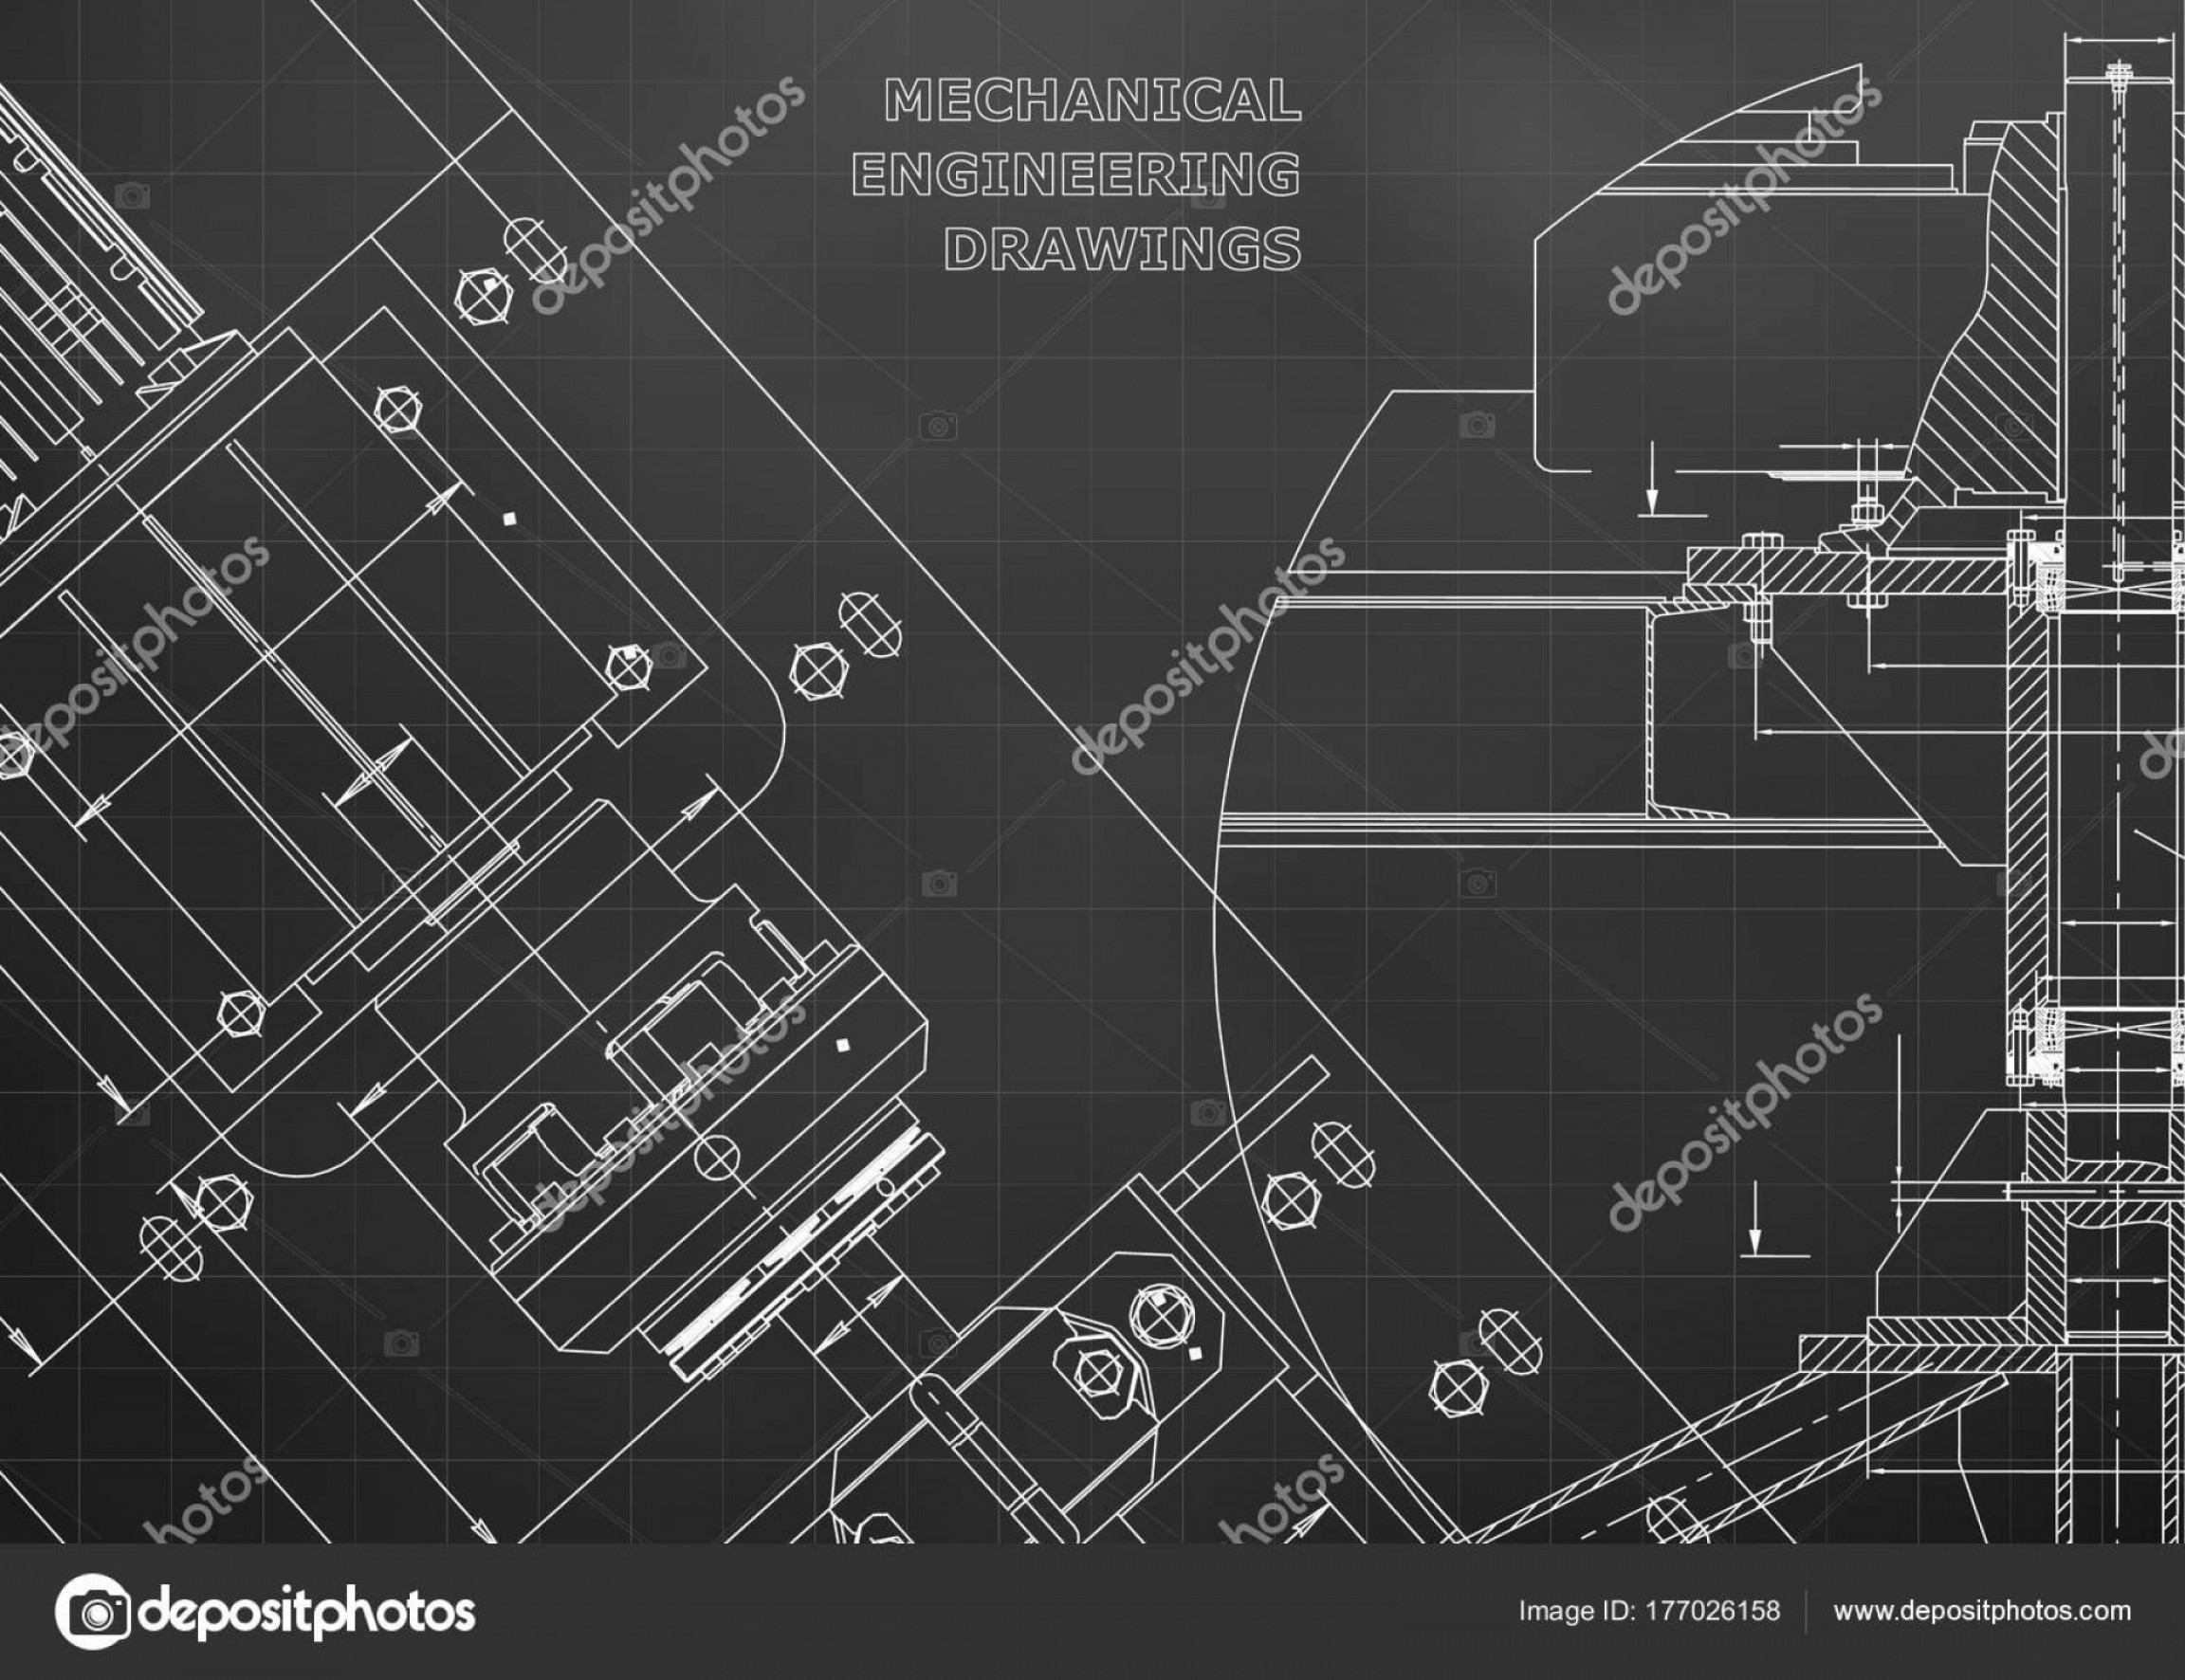 Residential Blueprint Vector Black: Stock Illustration Blueprints Mechanical Construction Technical Design